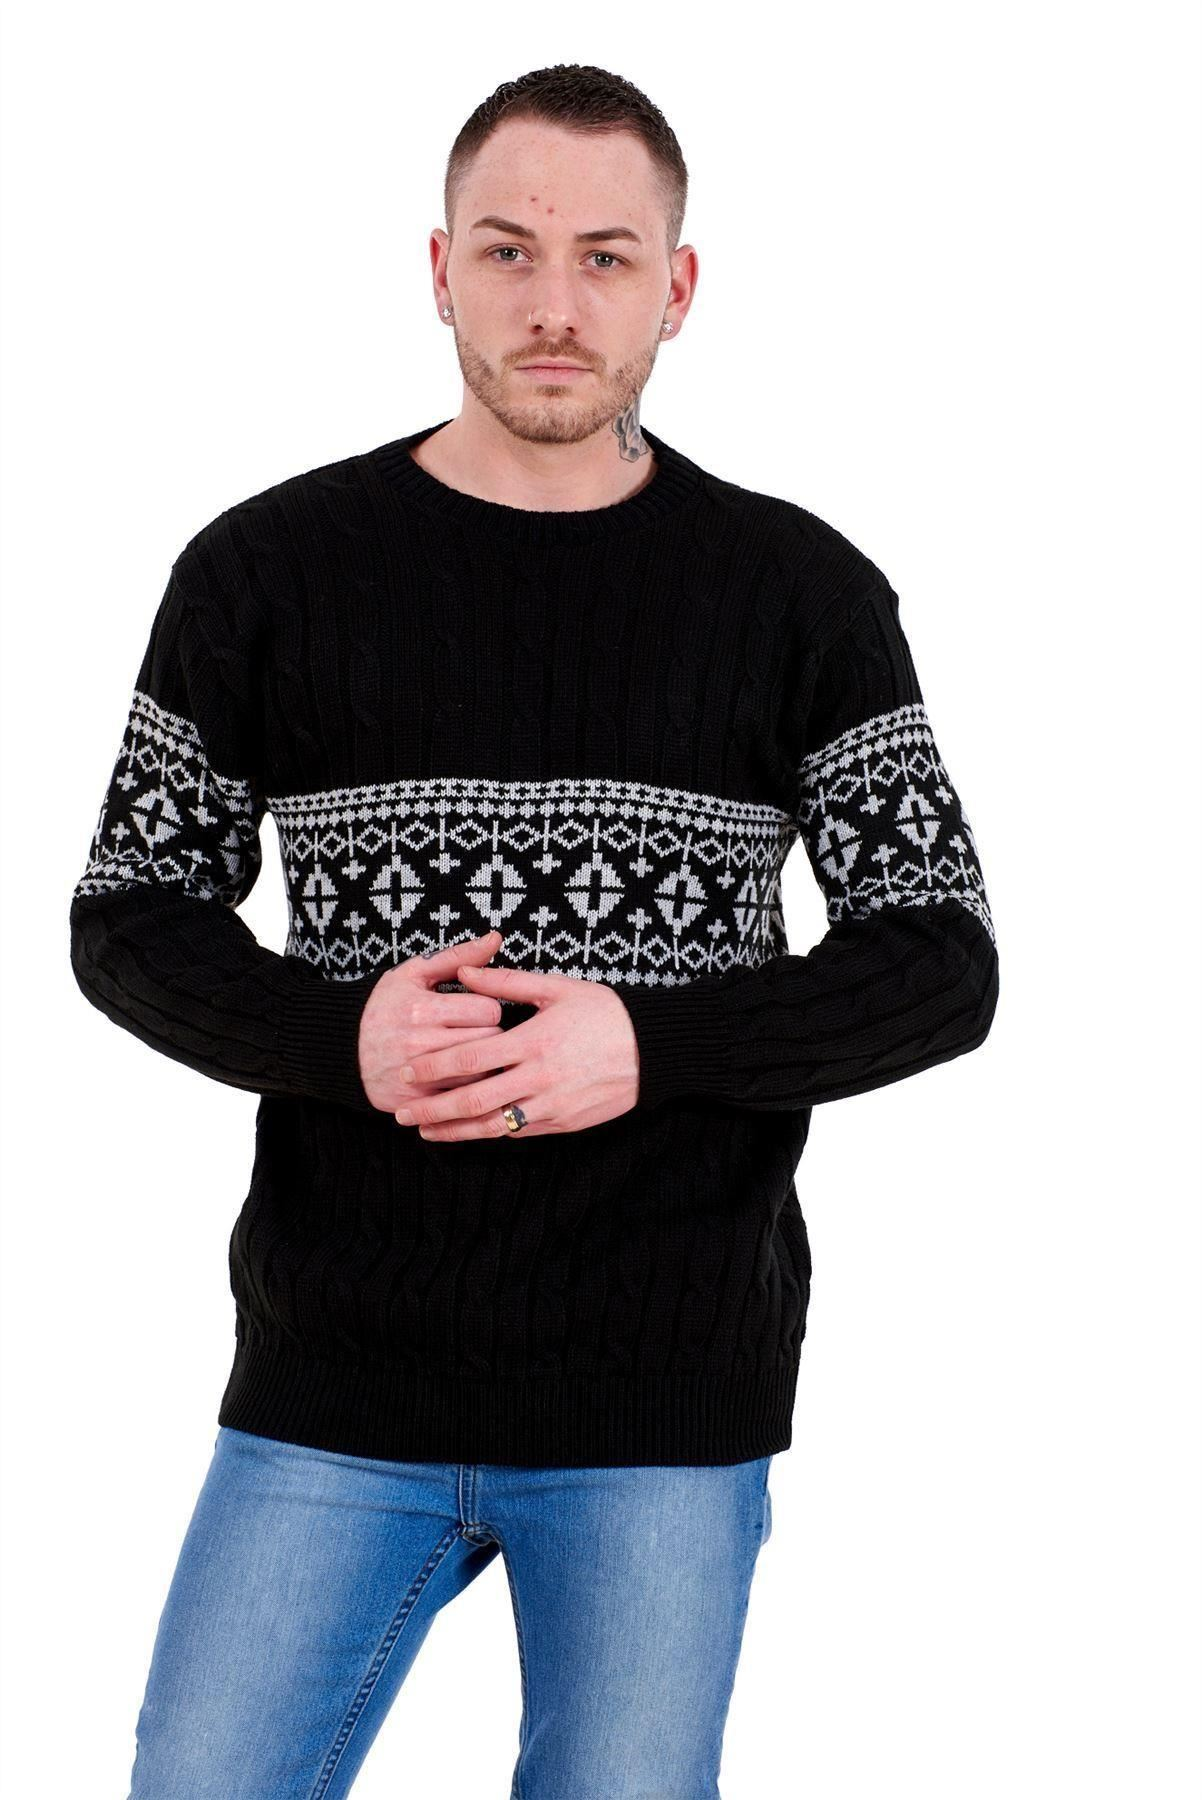 Mens-New-Cable-Knit-Jacquard-Long-Sleeve-Pullover-Jumper-Sweater-S-to-XL thumbnail 4